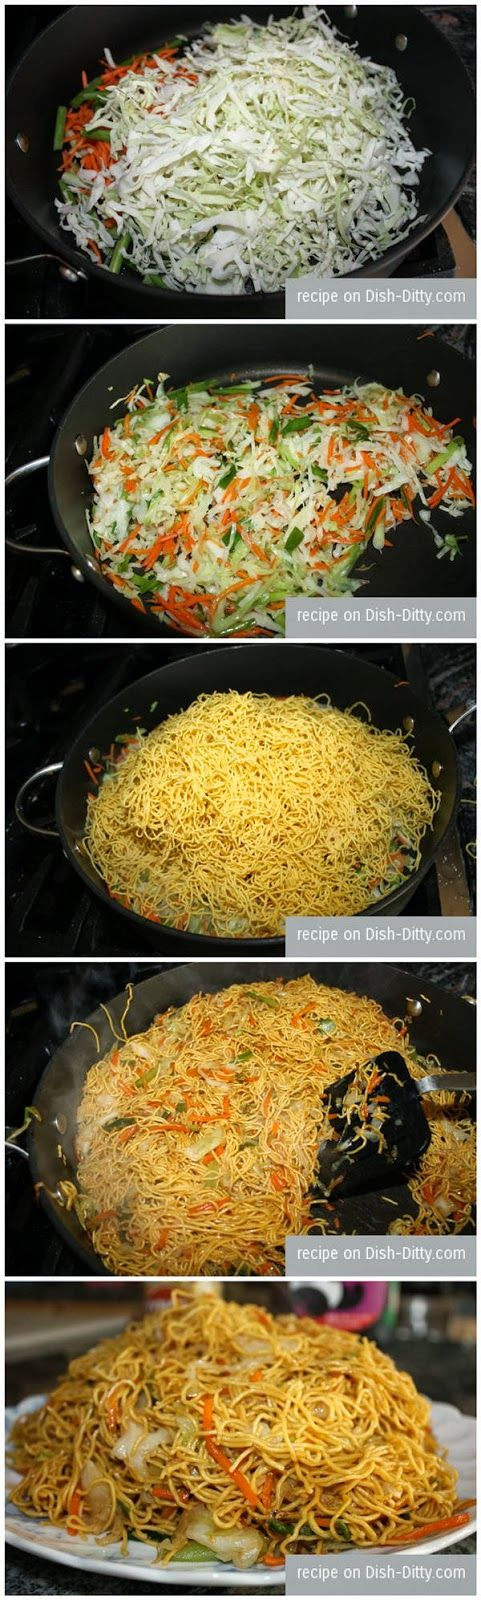 Red Sky Food: Vegetable Chow Mein Recipe